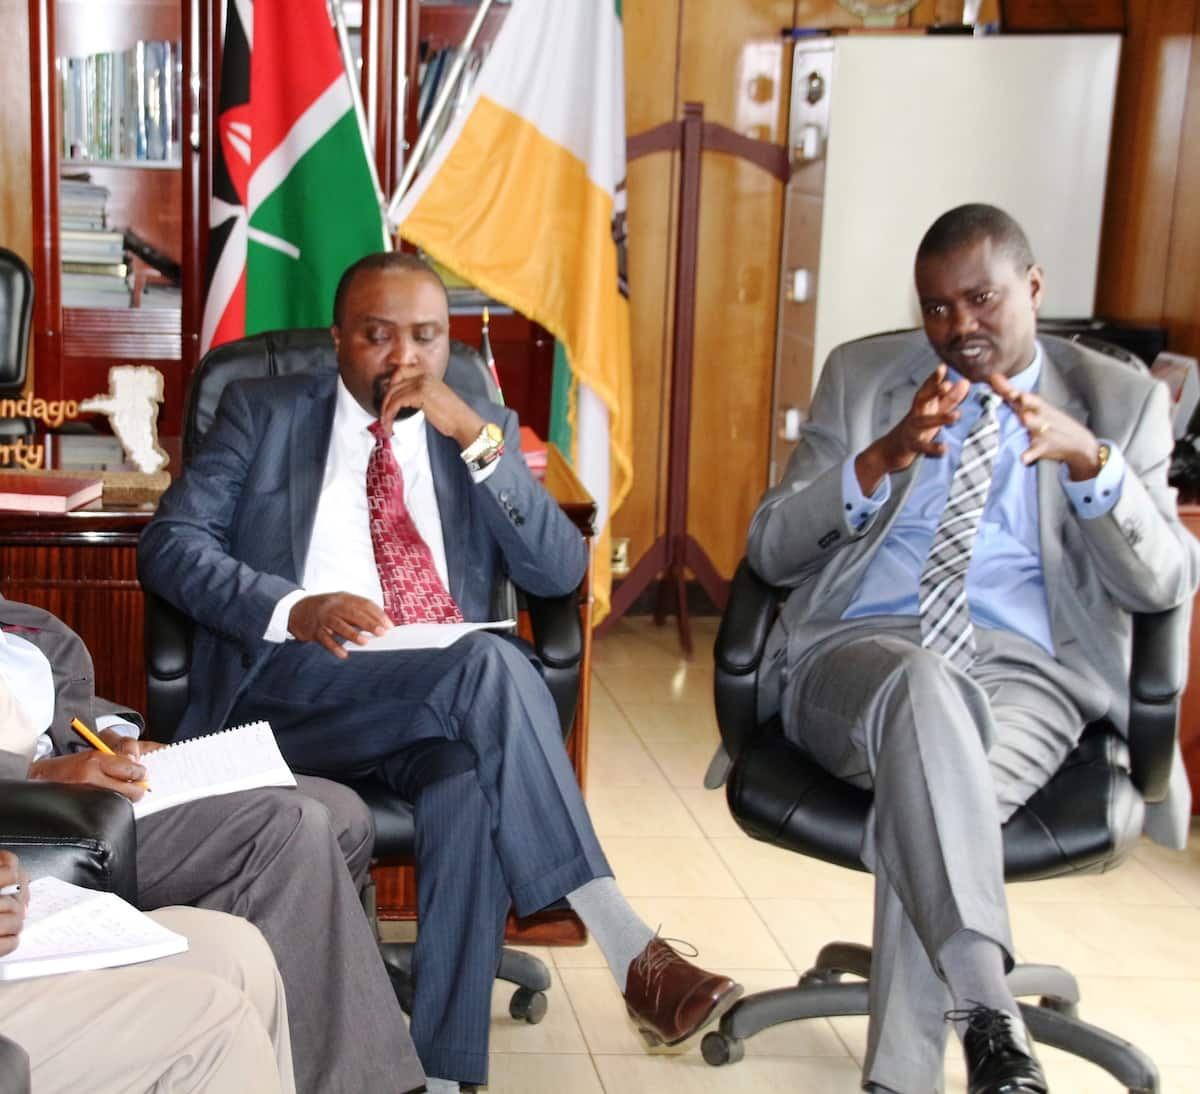 Mandago tells Murkomen to lecture his governor on devolution, stop umbrella criticism